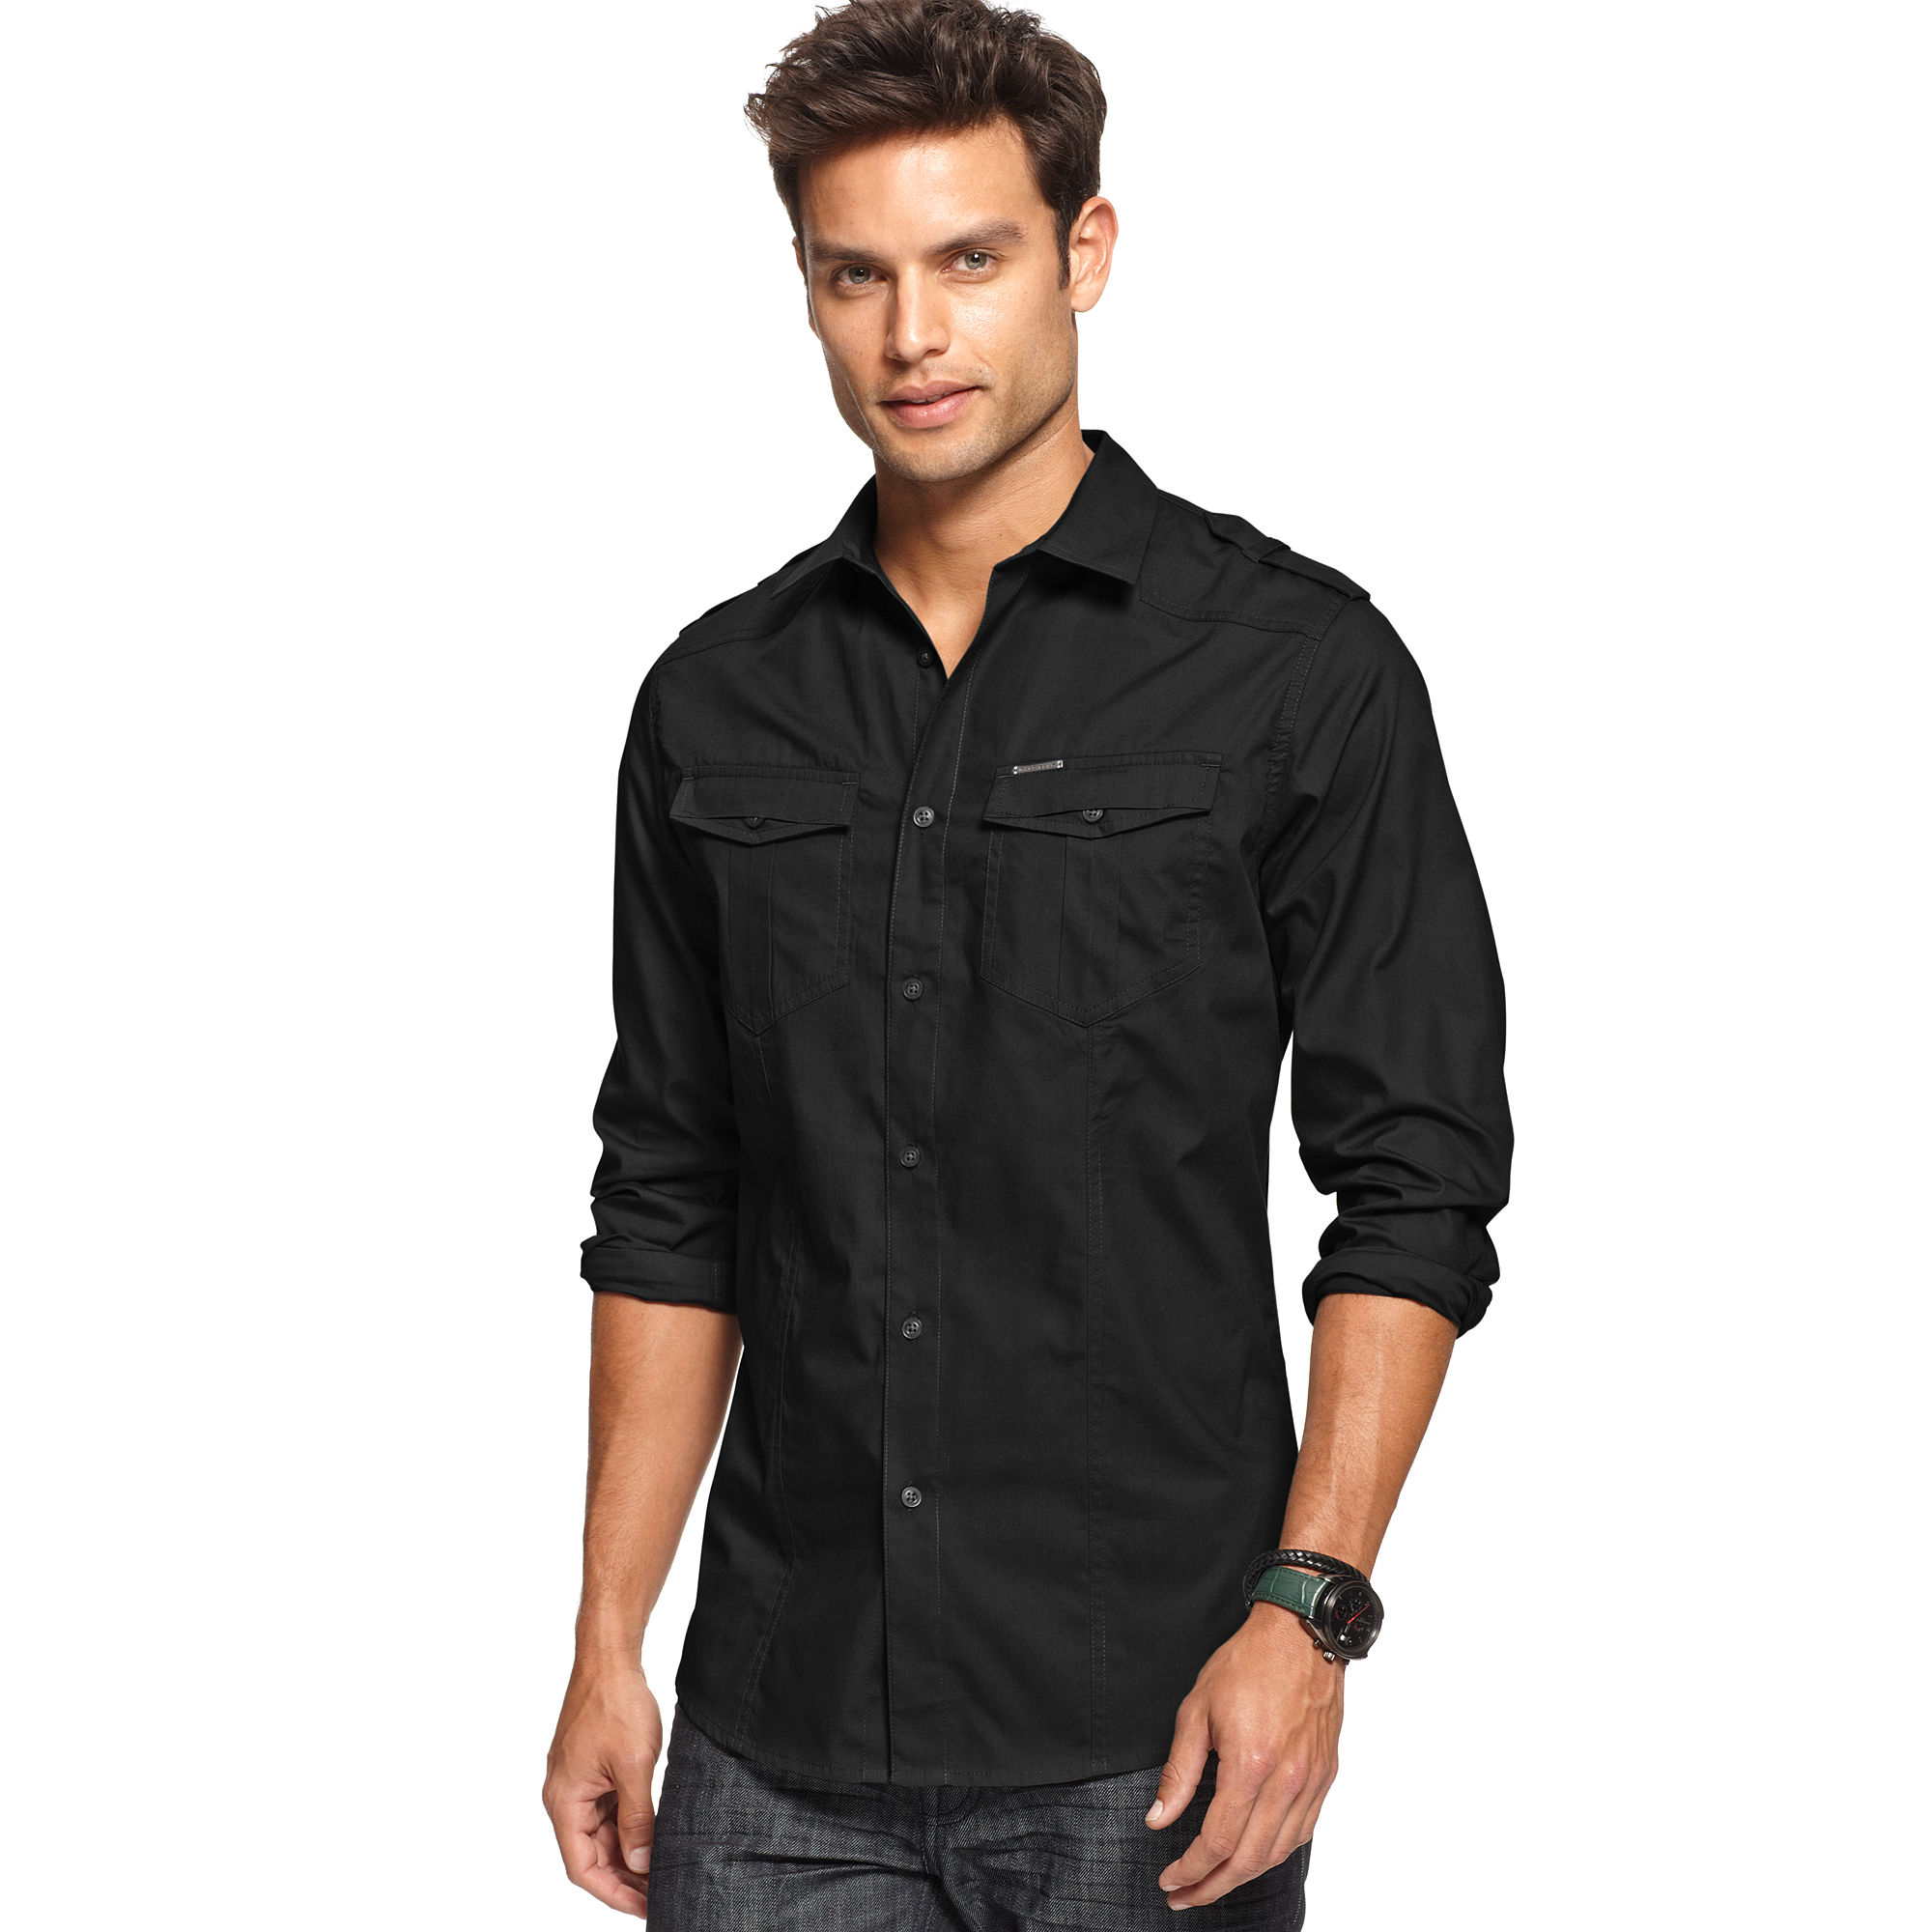 Marc ecko long sleeve solid military shirt in black for for Marc ecko dress shirts